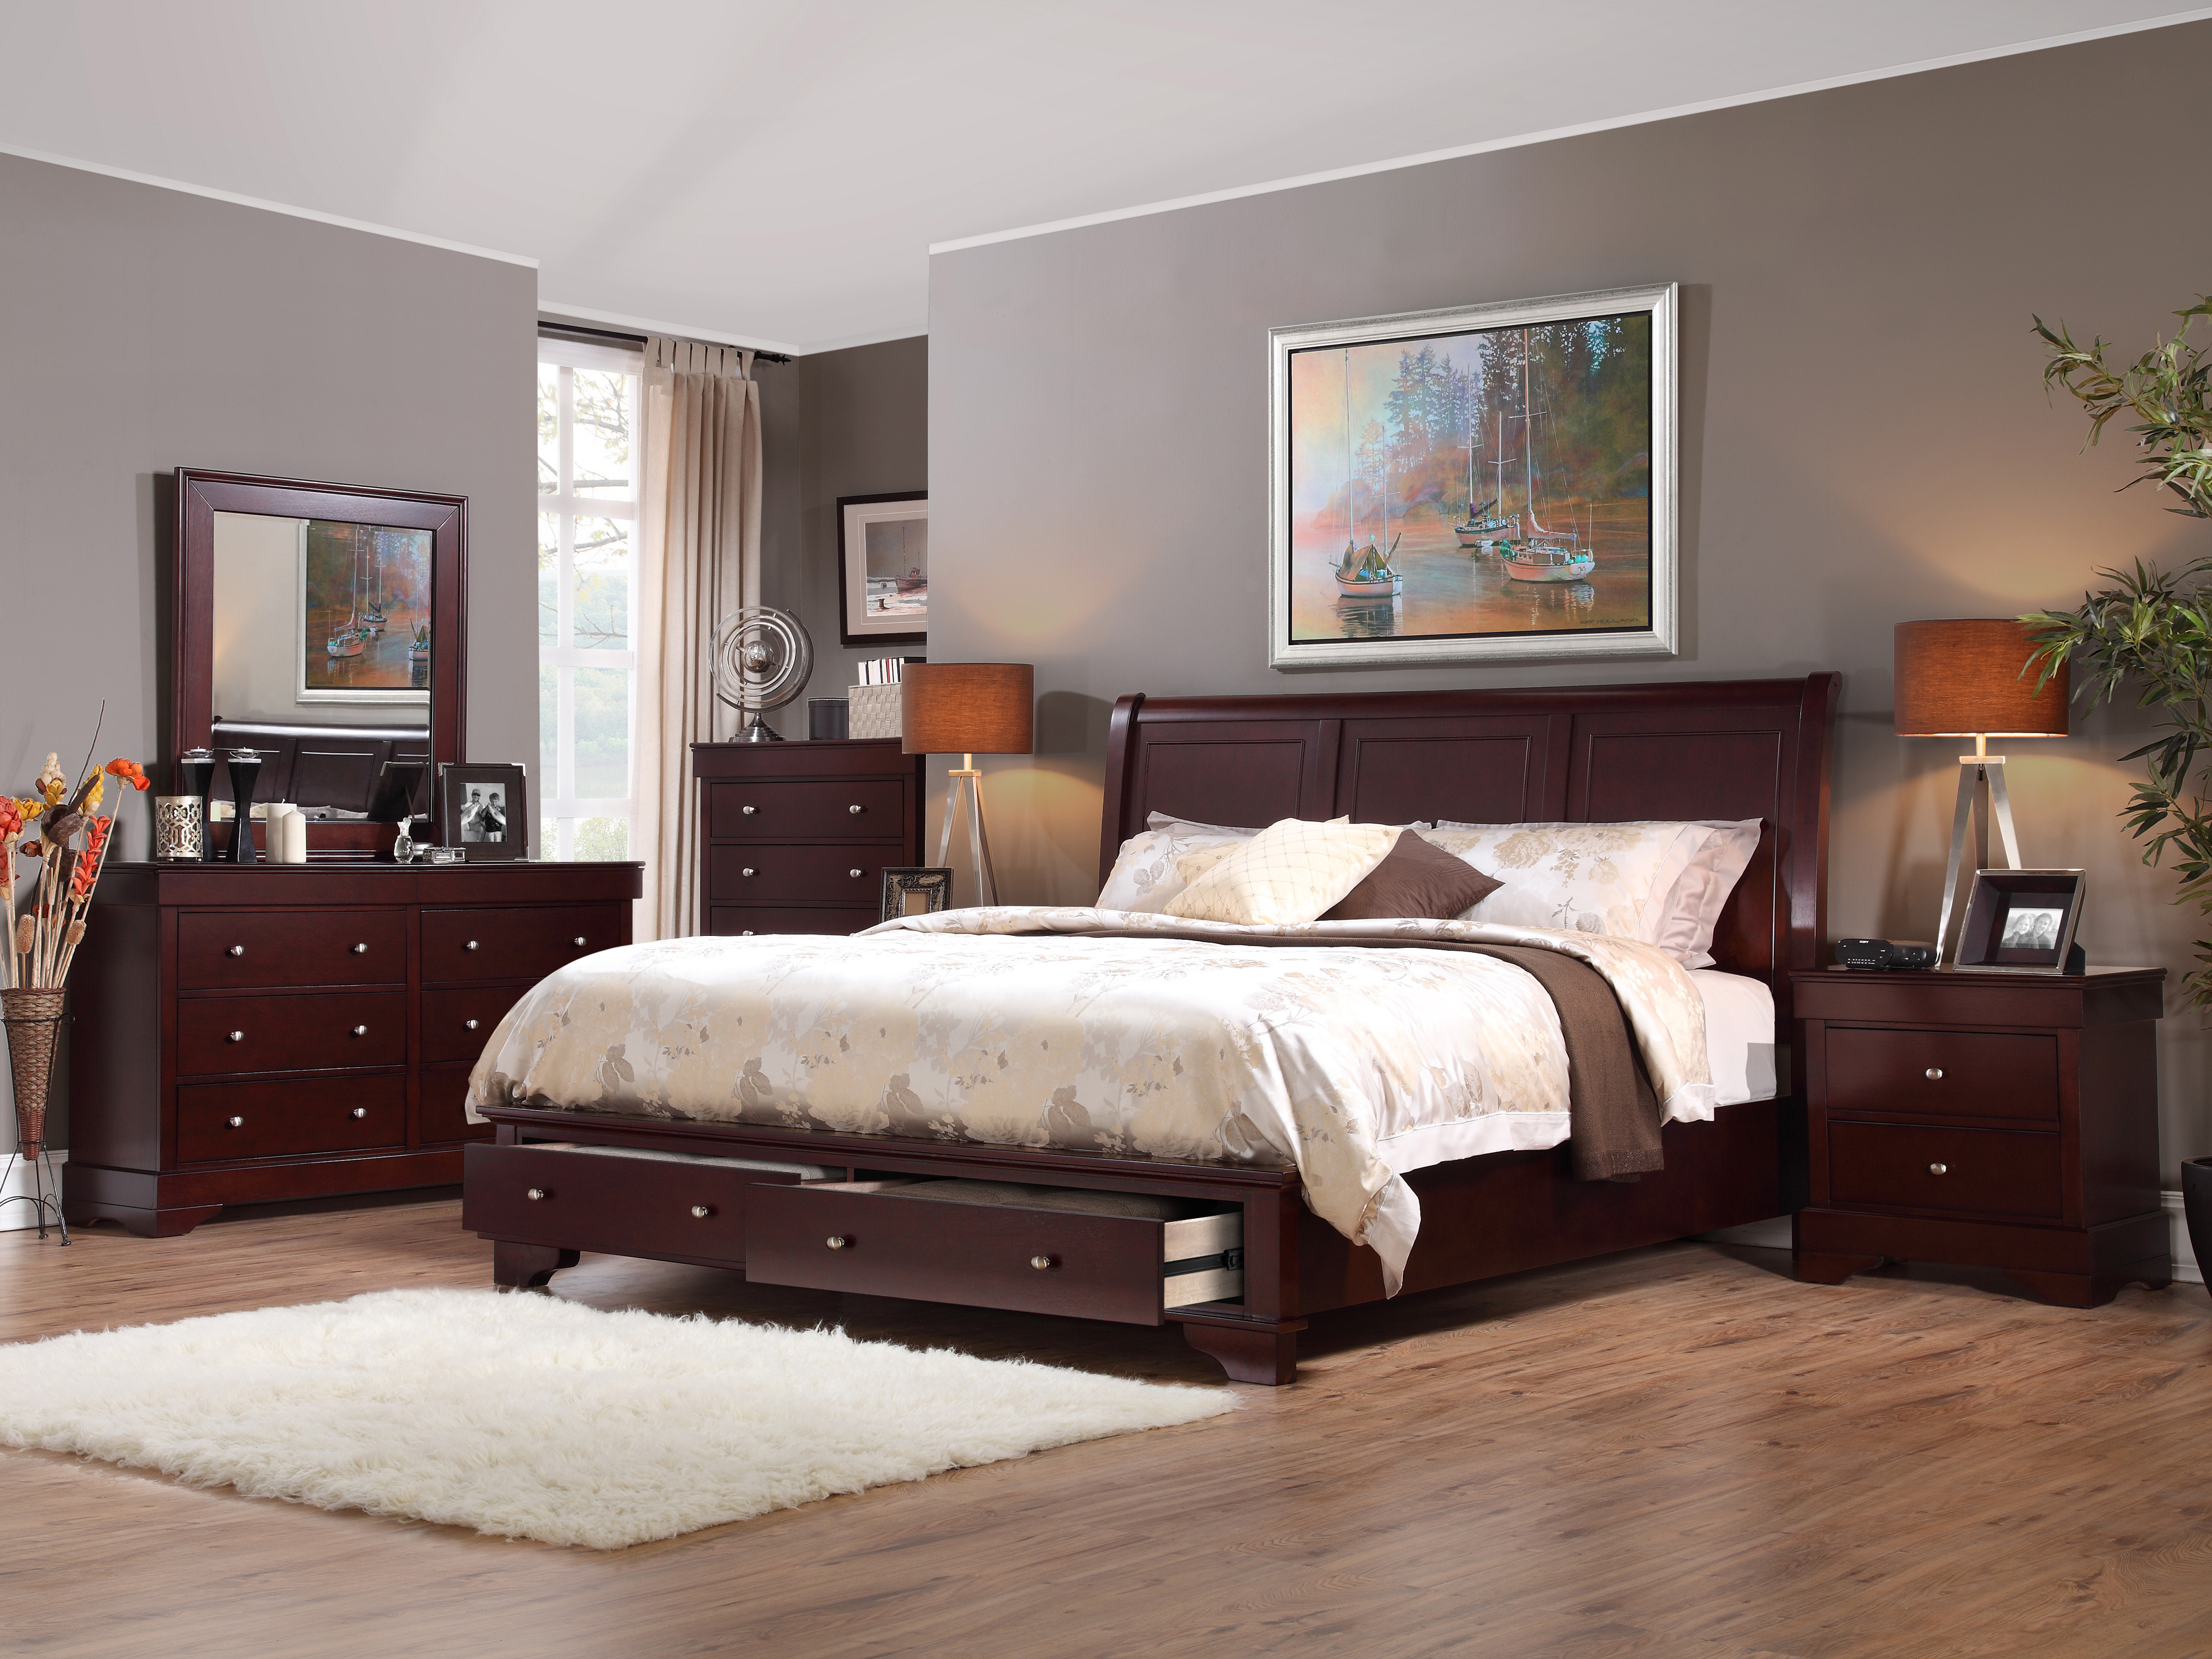 Lifestyle Solutions Bedroom Furniture Goodnight Furniture And Mattresses Store In San Mateo And San